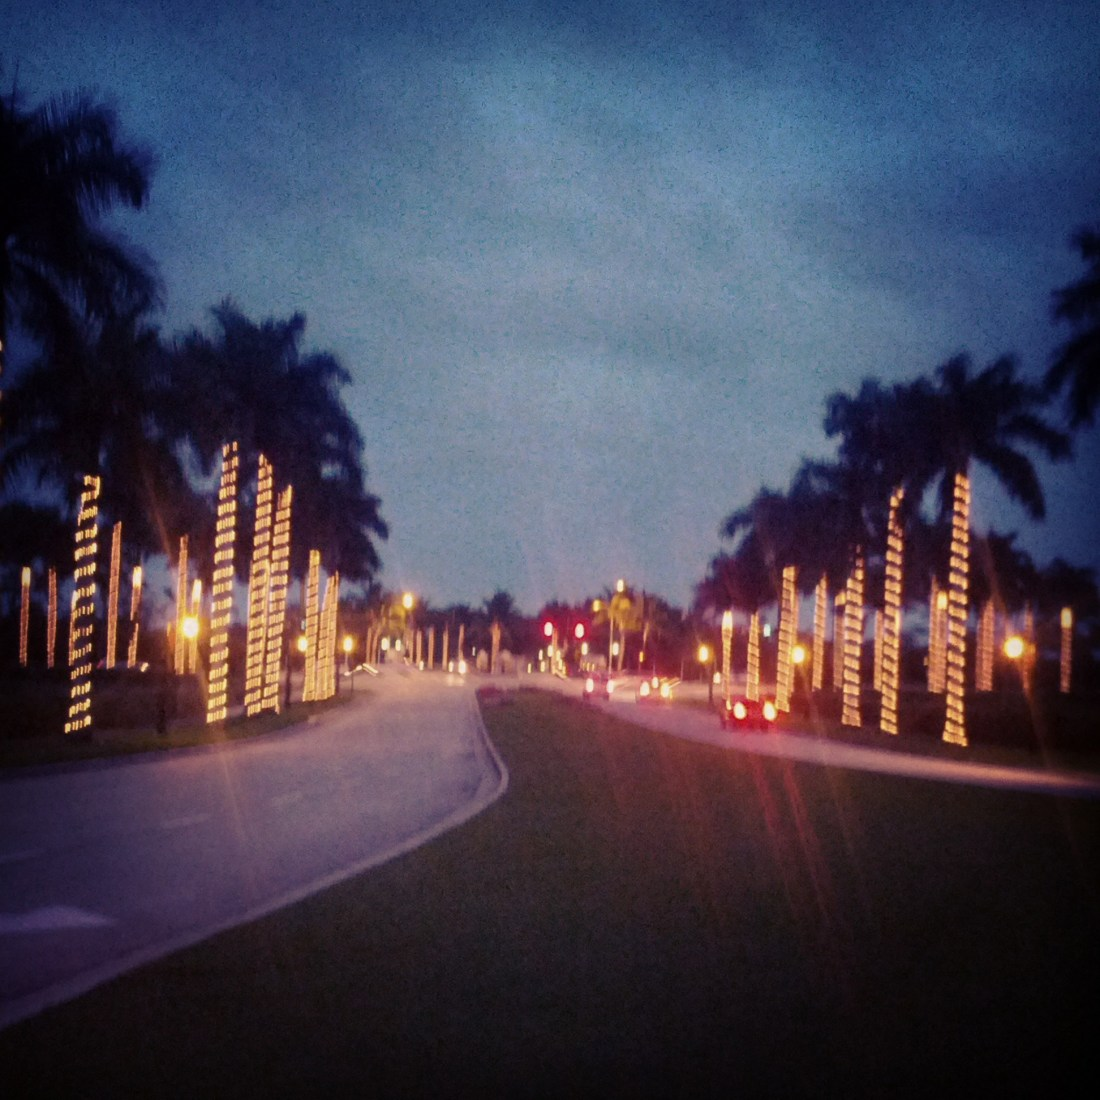 blurry path with lighted palm trees